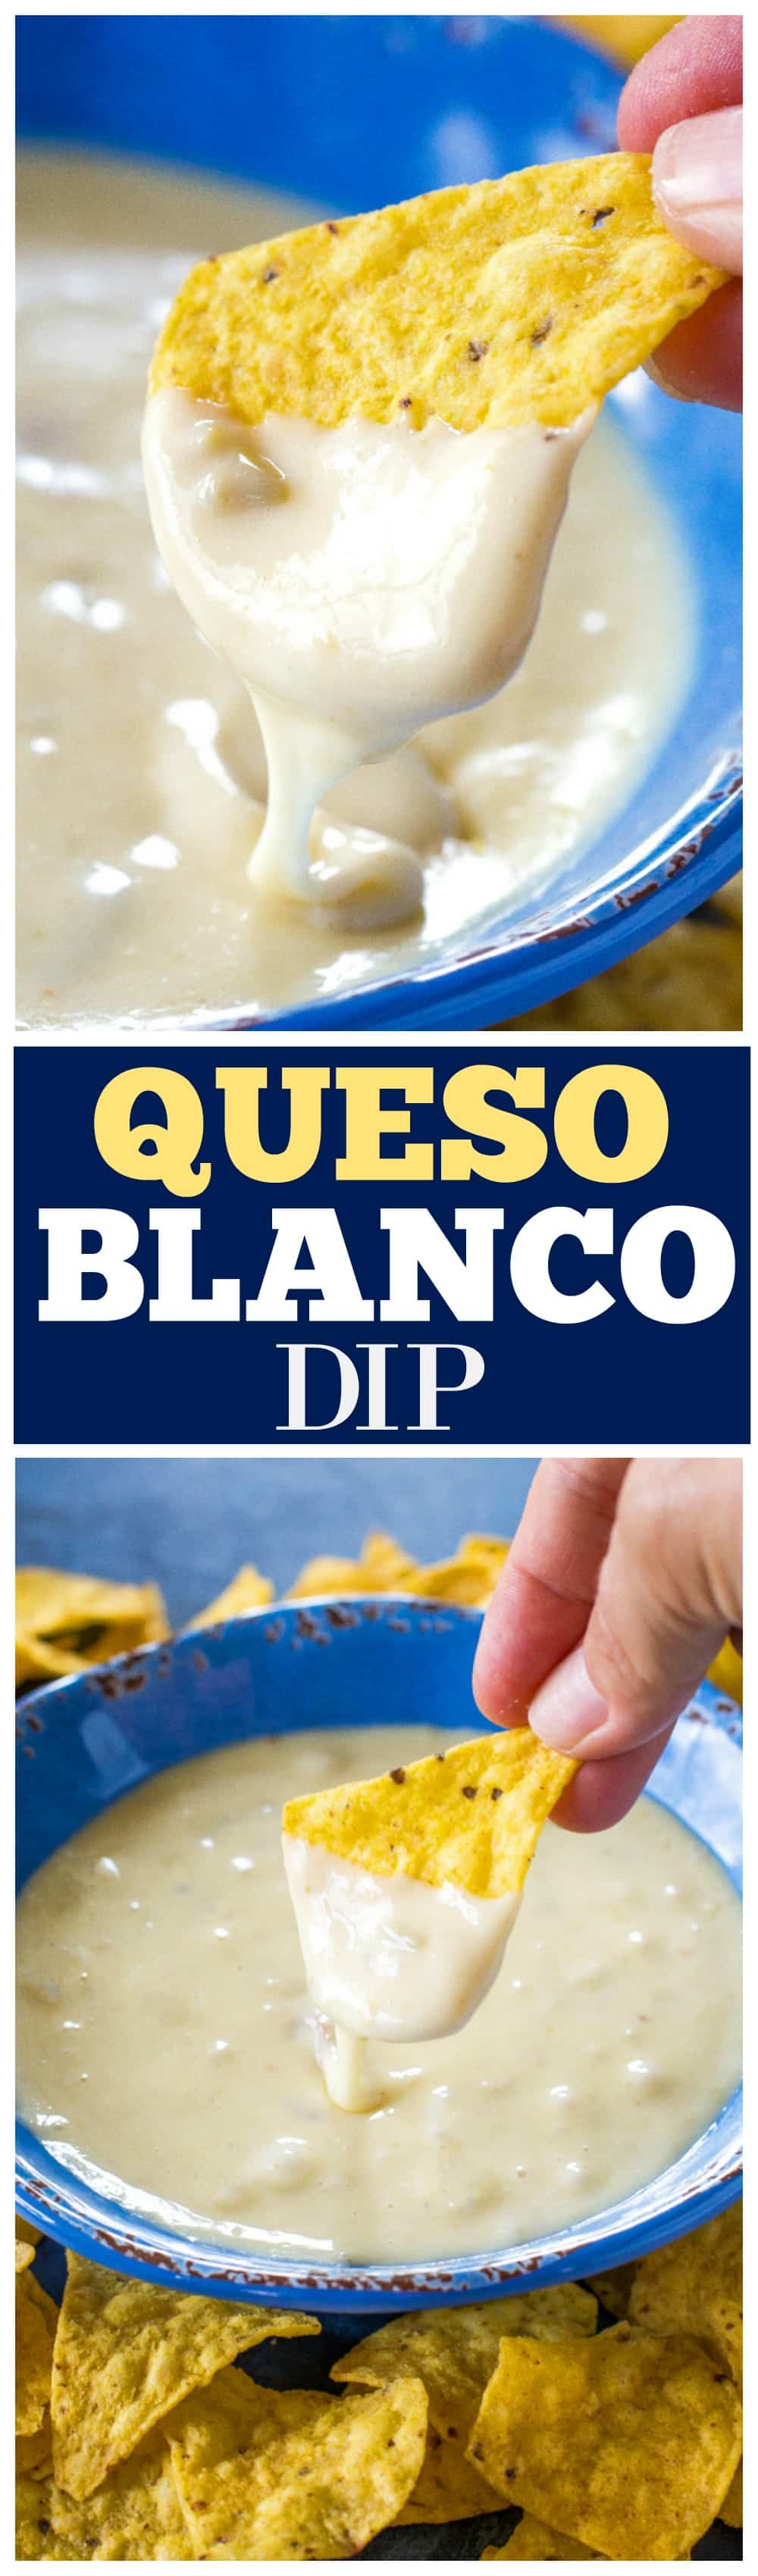 Queso Blanco Dip - only 4 ingredients to creamy, restaurant quality dip appetizer. Can be made in the crockpot too! #queso #blanco #dip #appetizer #mexican #recipe